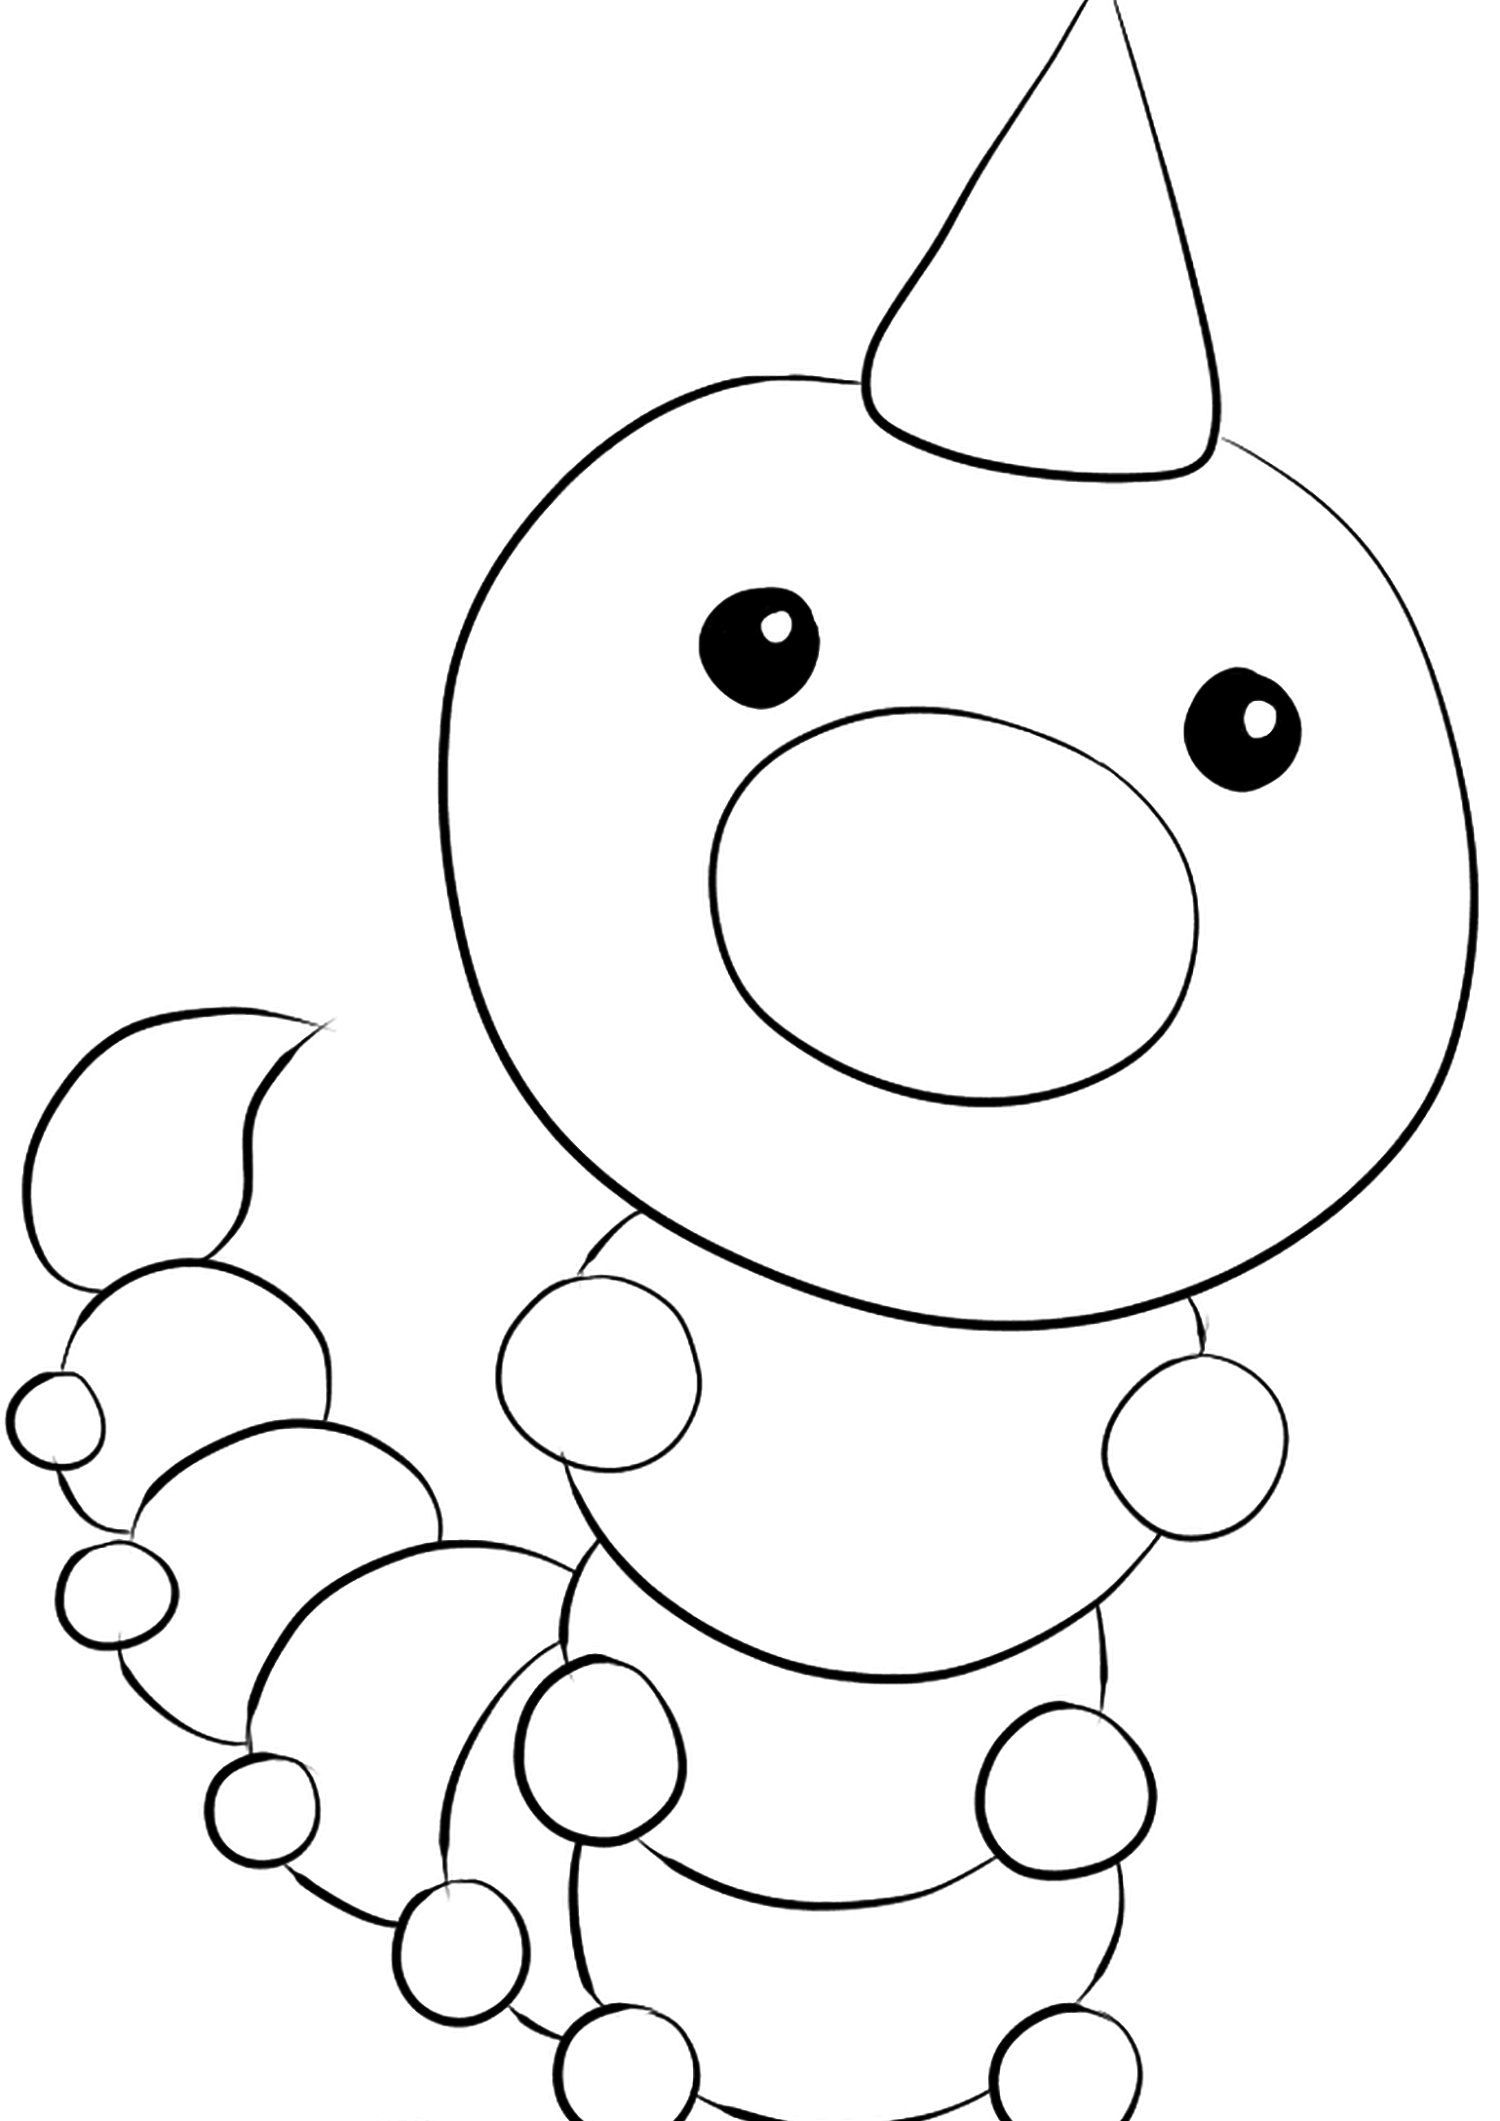 Weedle (No.13)Weedle Coloring page, Generation I Pokemon of type Bug and PoisonOriginal image credit: Pokemon linearts by Lilly Gerbil'font-size:smaller;color:gray'>Permission: All rights reserved © Pokemon company and Ken Sugimori.